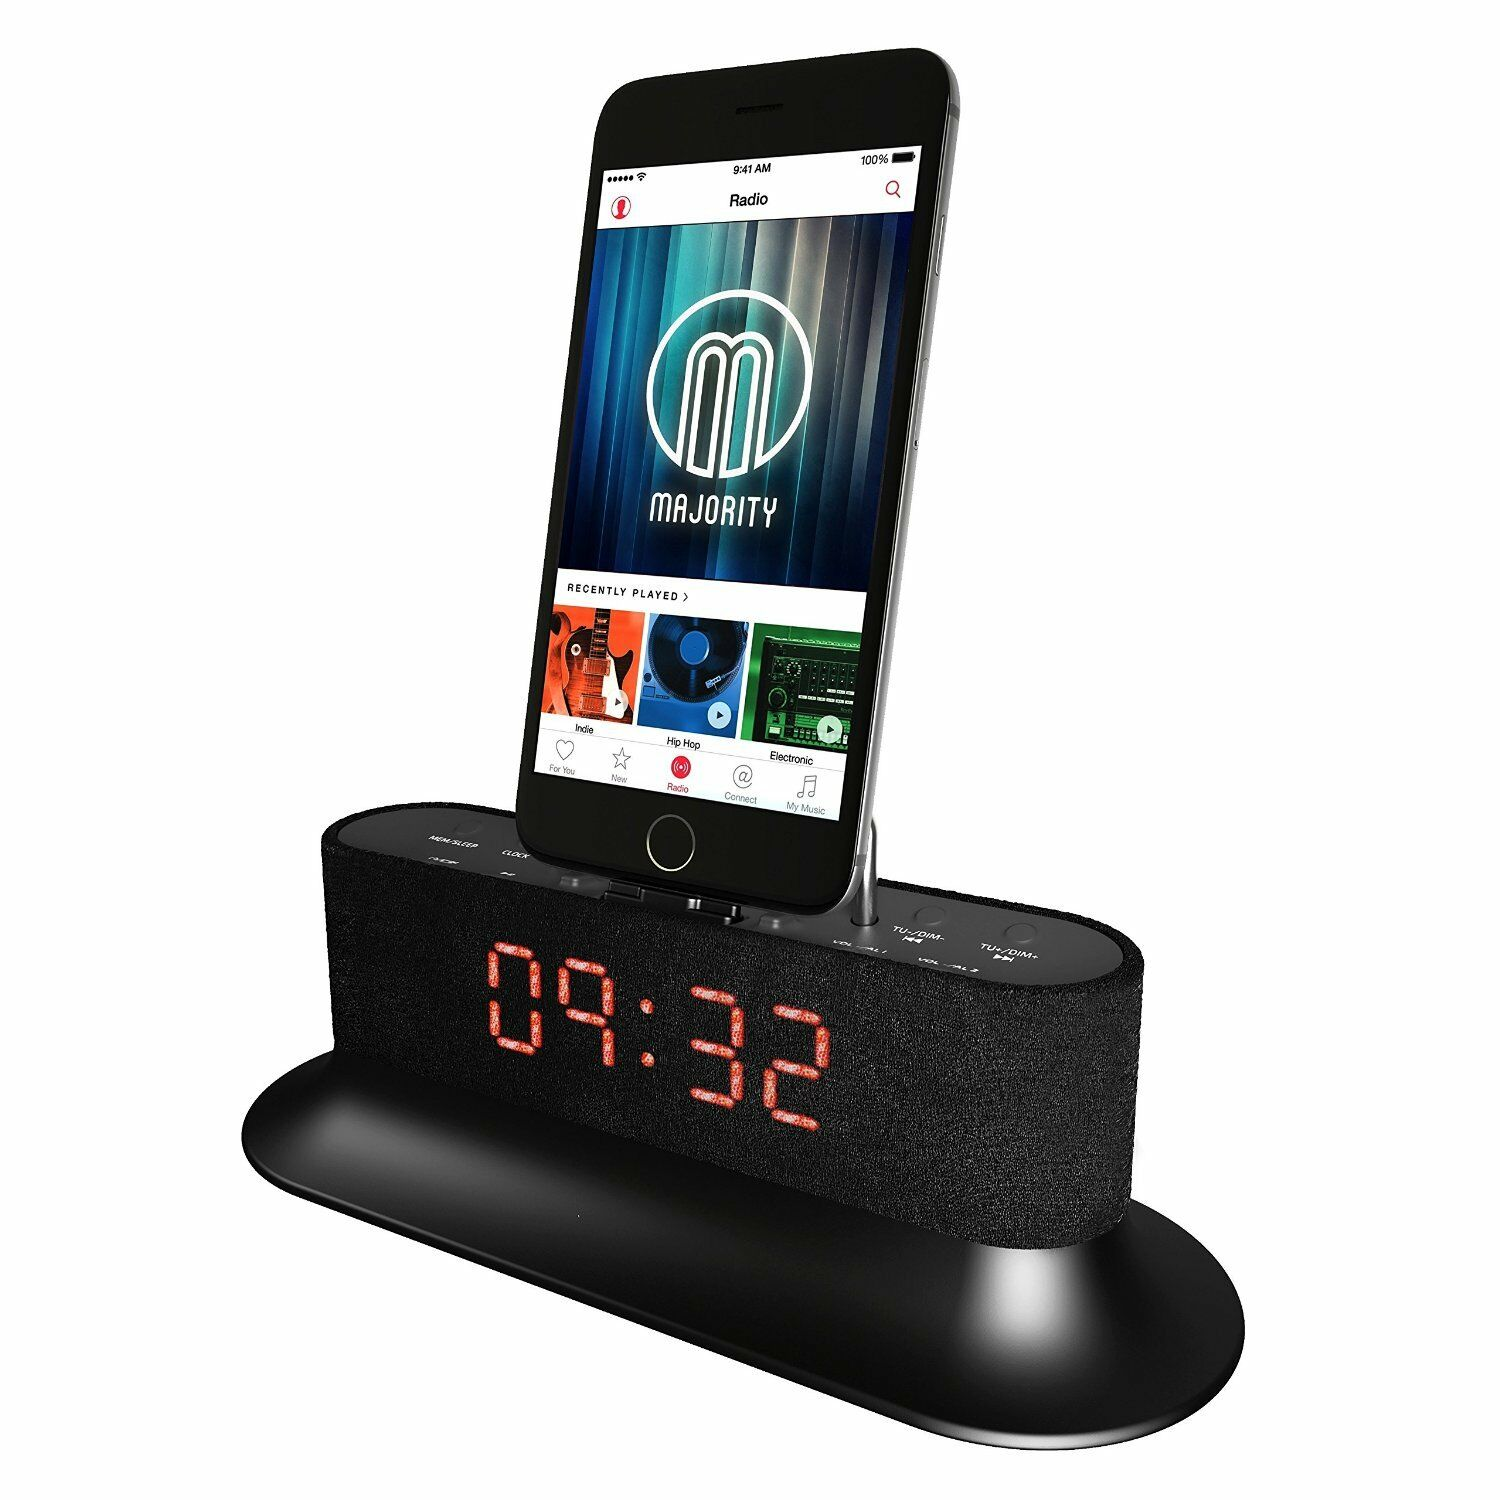 mercury docking station speaker dock alarm for ipod. Black Bedroom Furniture Sets. Home Design Ideas